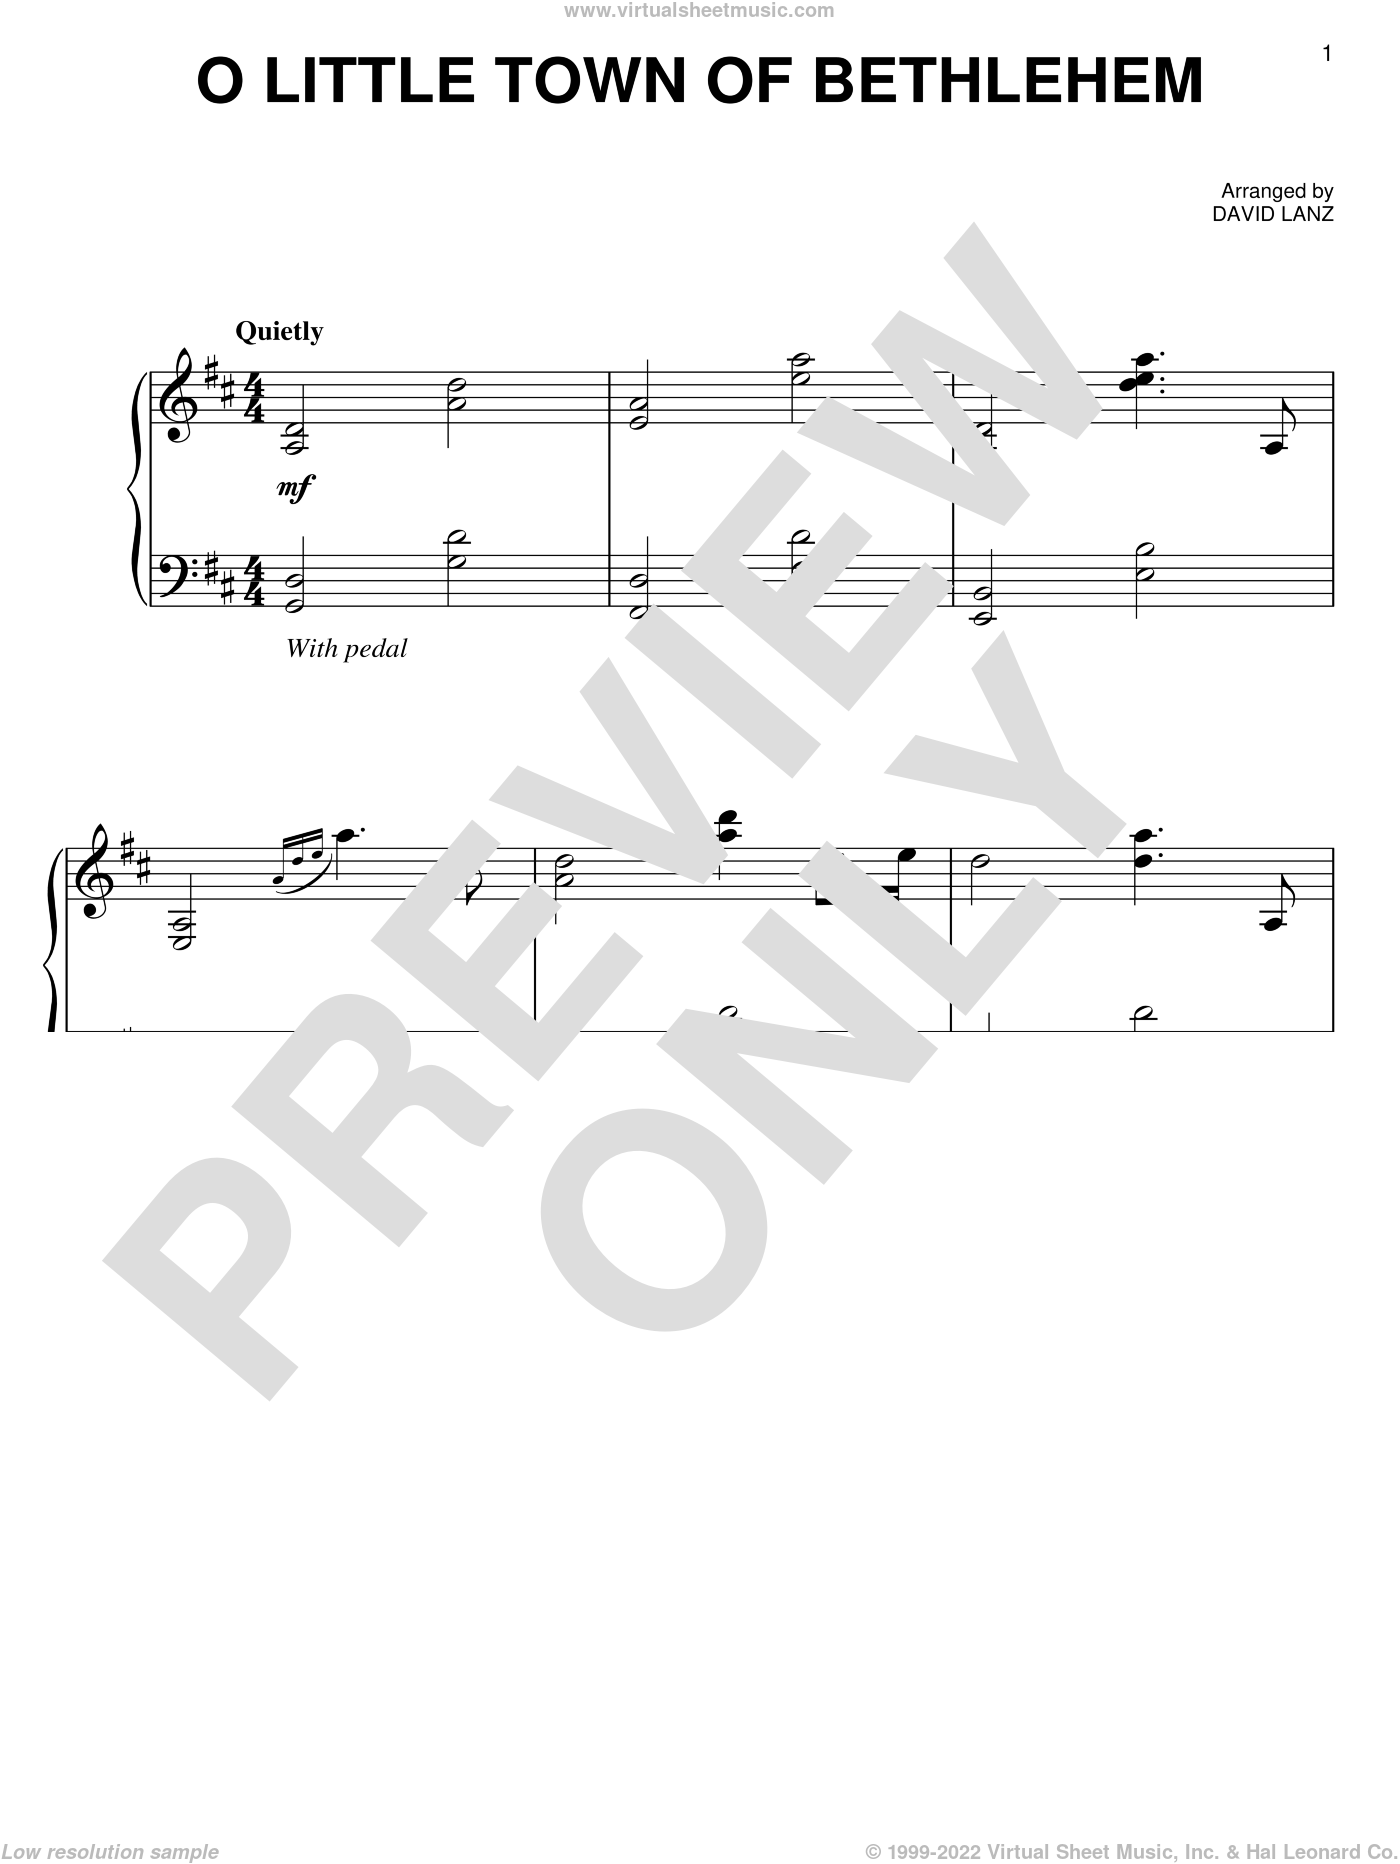 O Little Town Of Bethlehem sheet music for piano solo by David Lanz, easy skill level